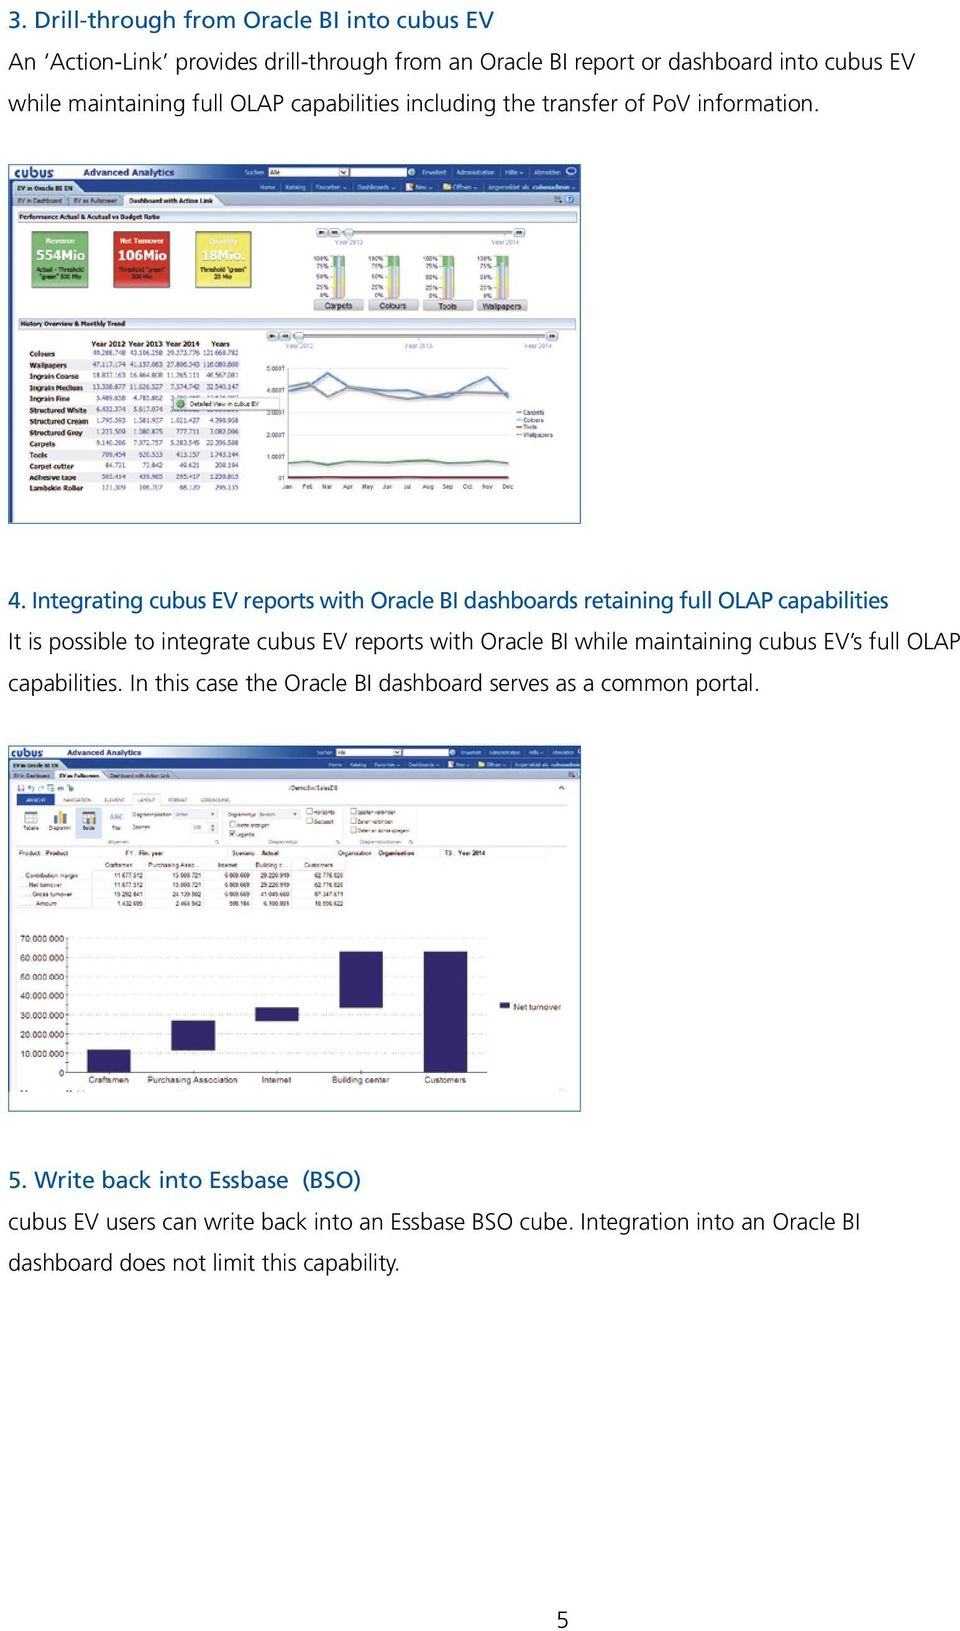 Itegratig cubus EV reports with Oracle BI dashboards retaiig full OLAP capabilities It is possible to itegrate cubus EV reports with Oracle BI while